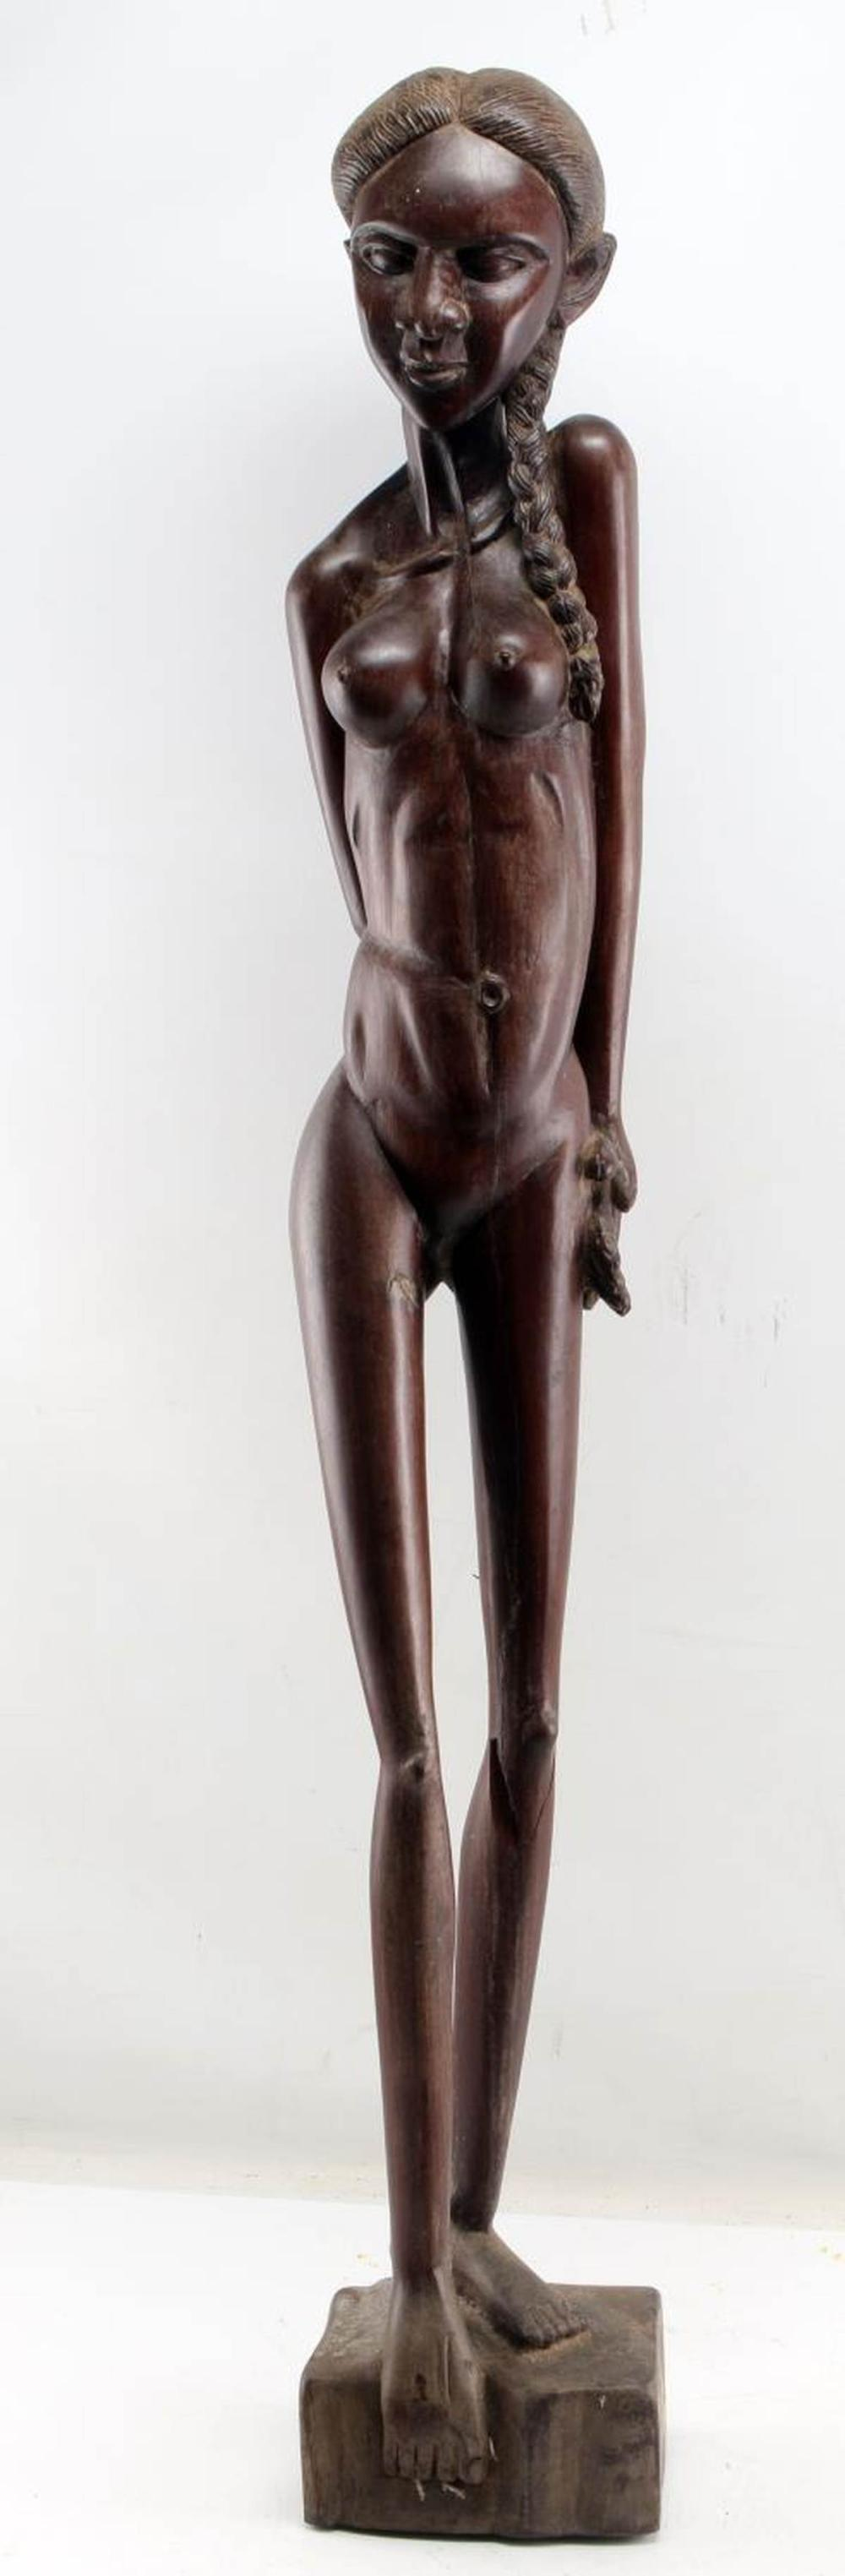 AFRICAN WOODEN SCULPTURE OF YOUNG NUDE WOMAN